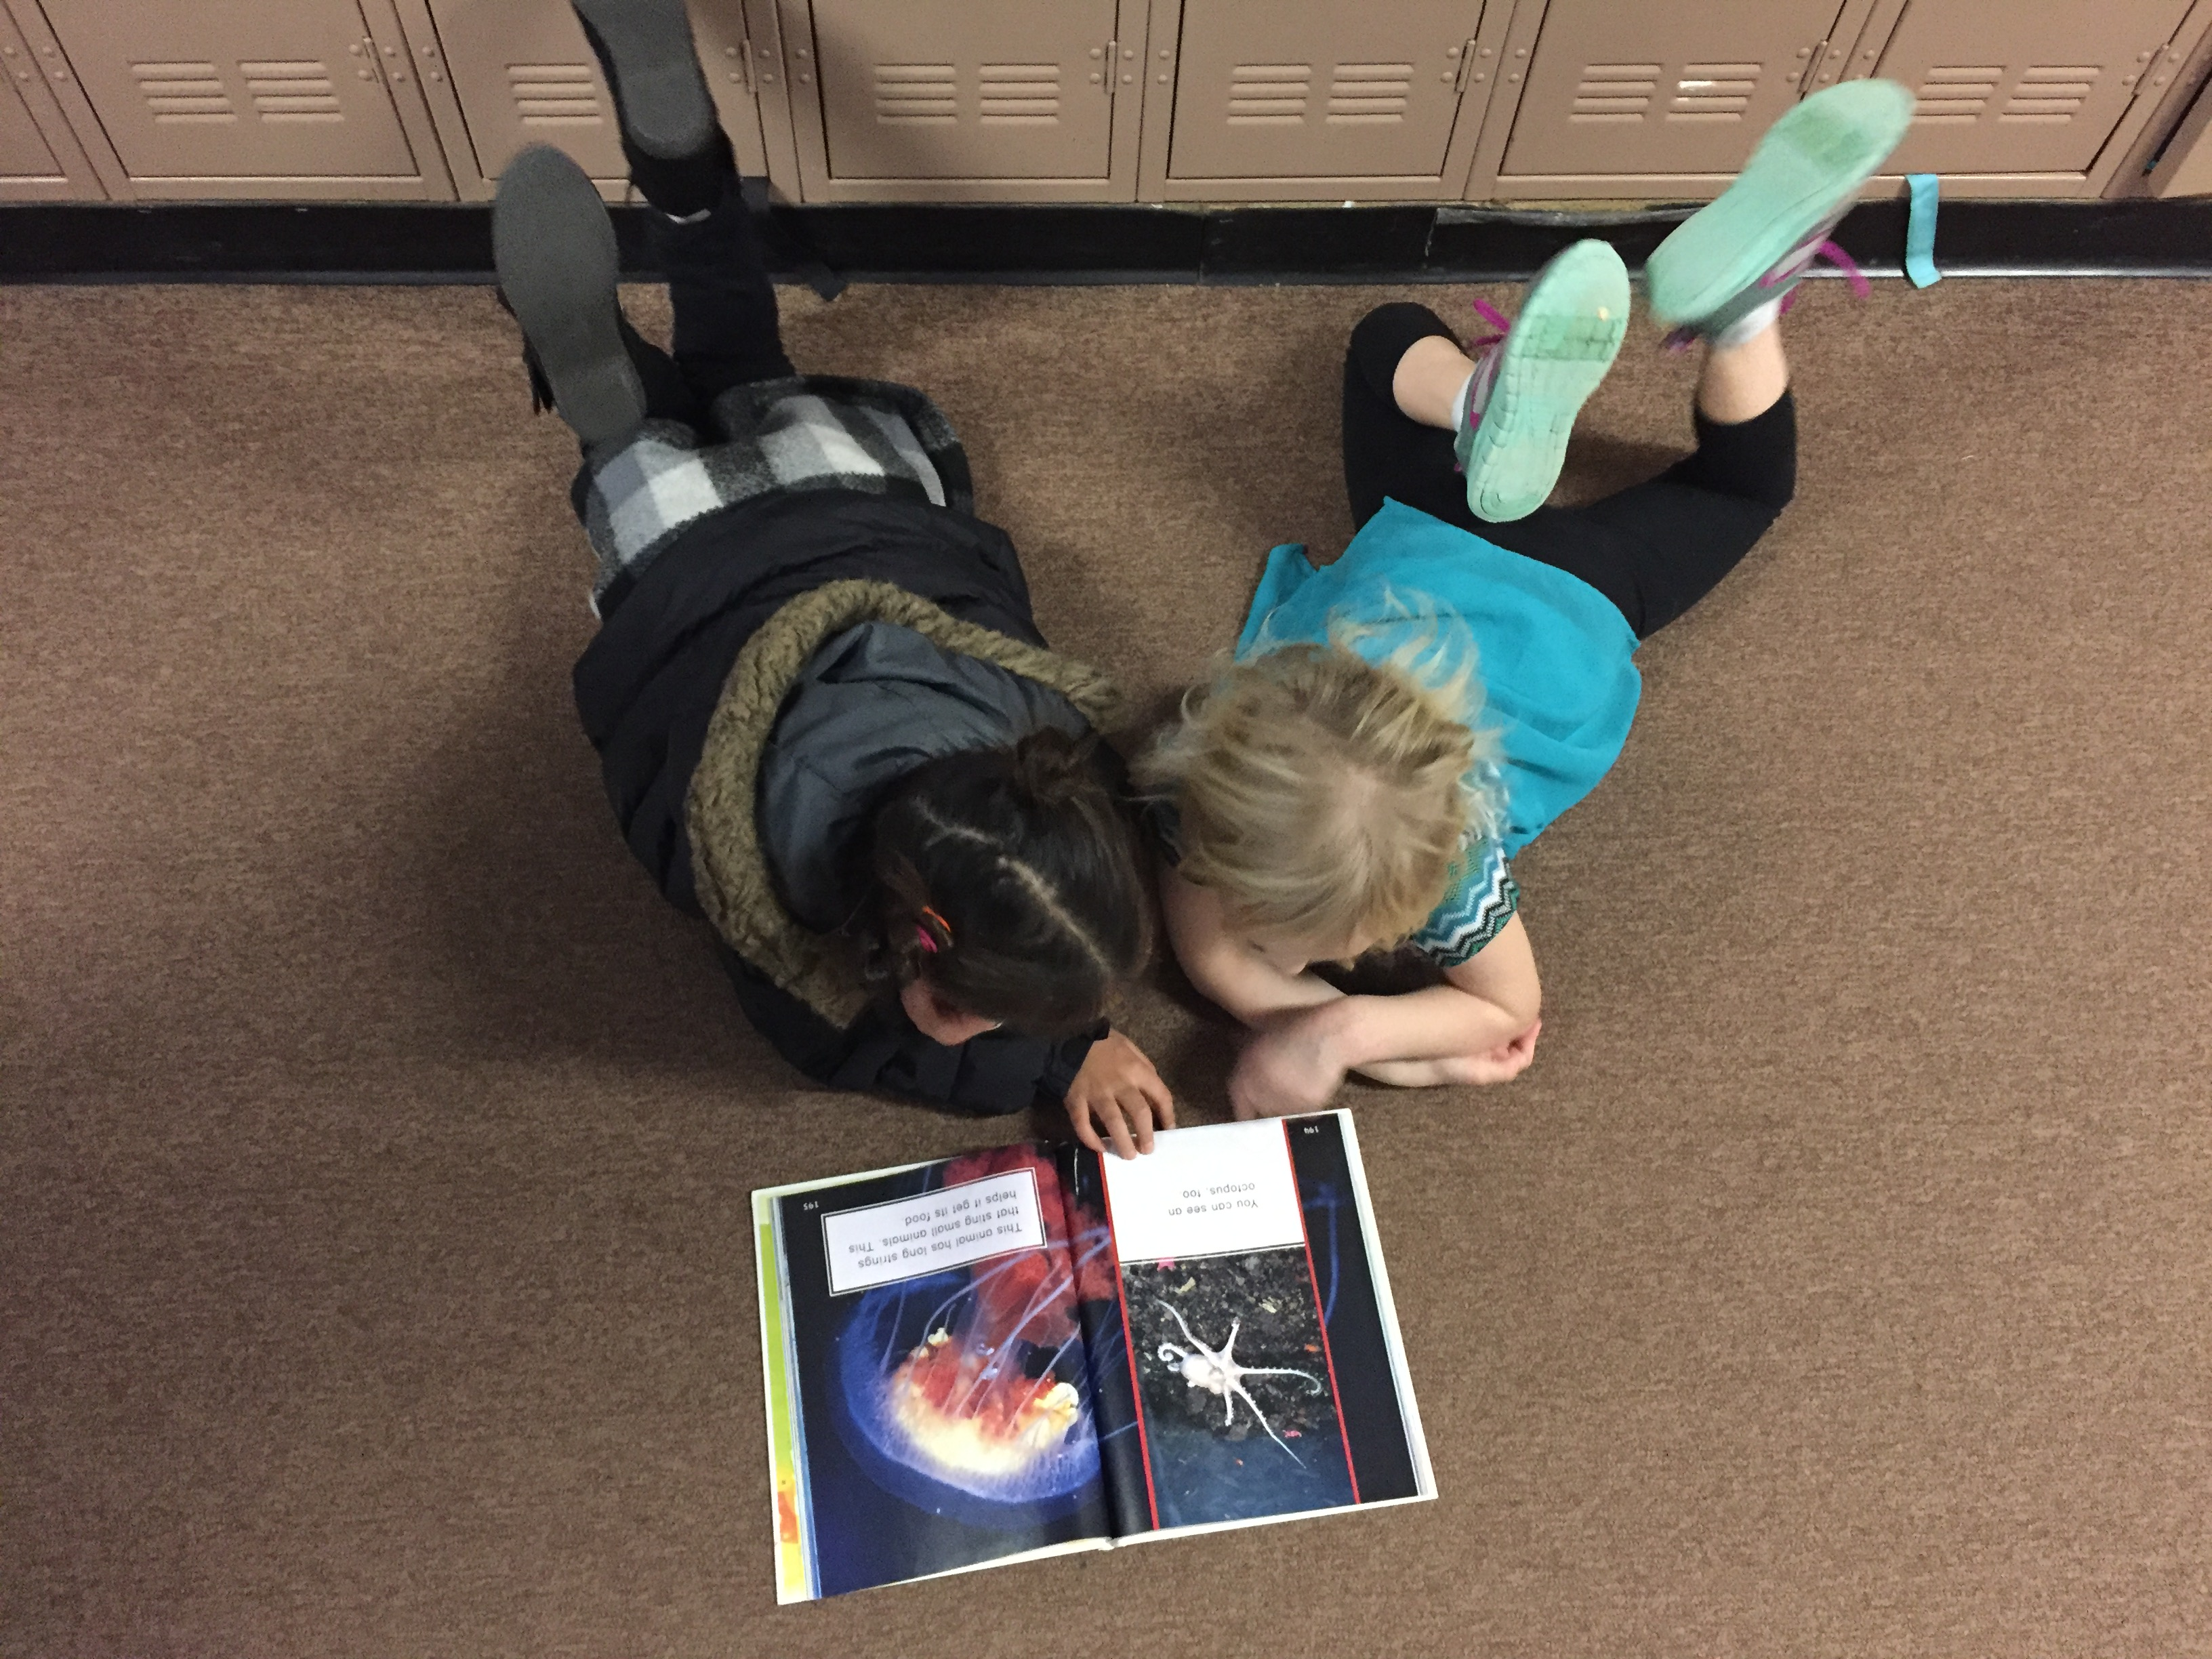 Mark Twain Elementary School Students Read Together